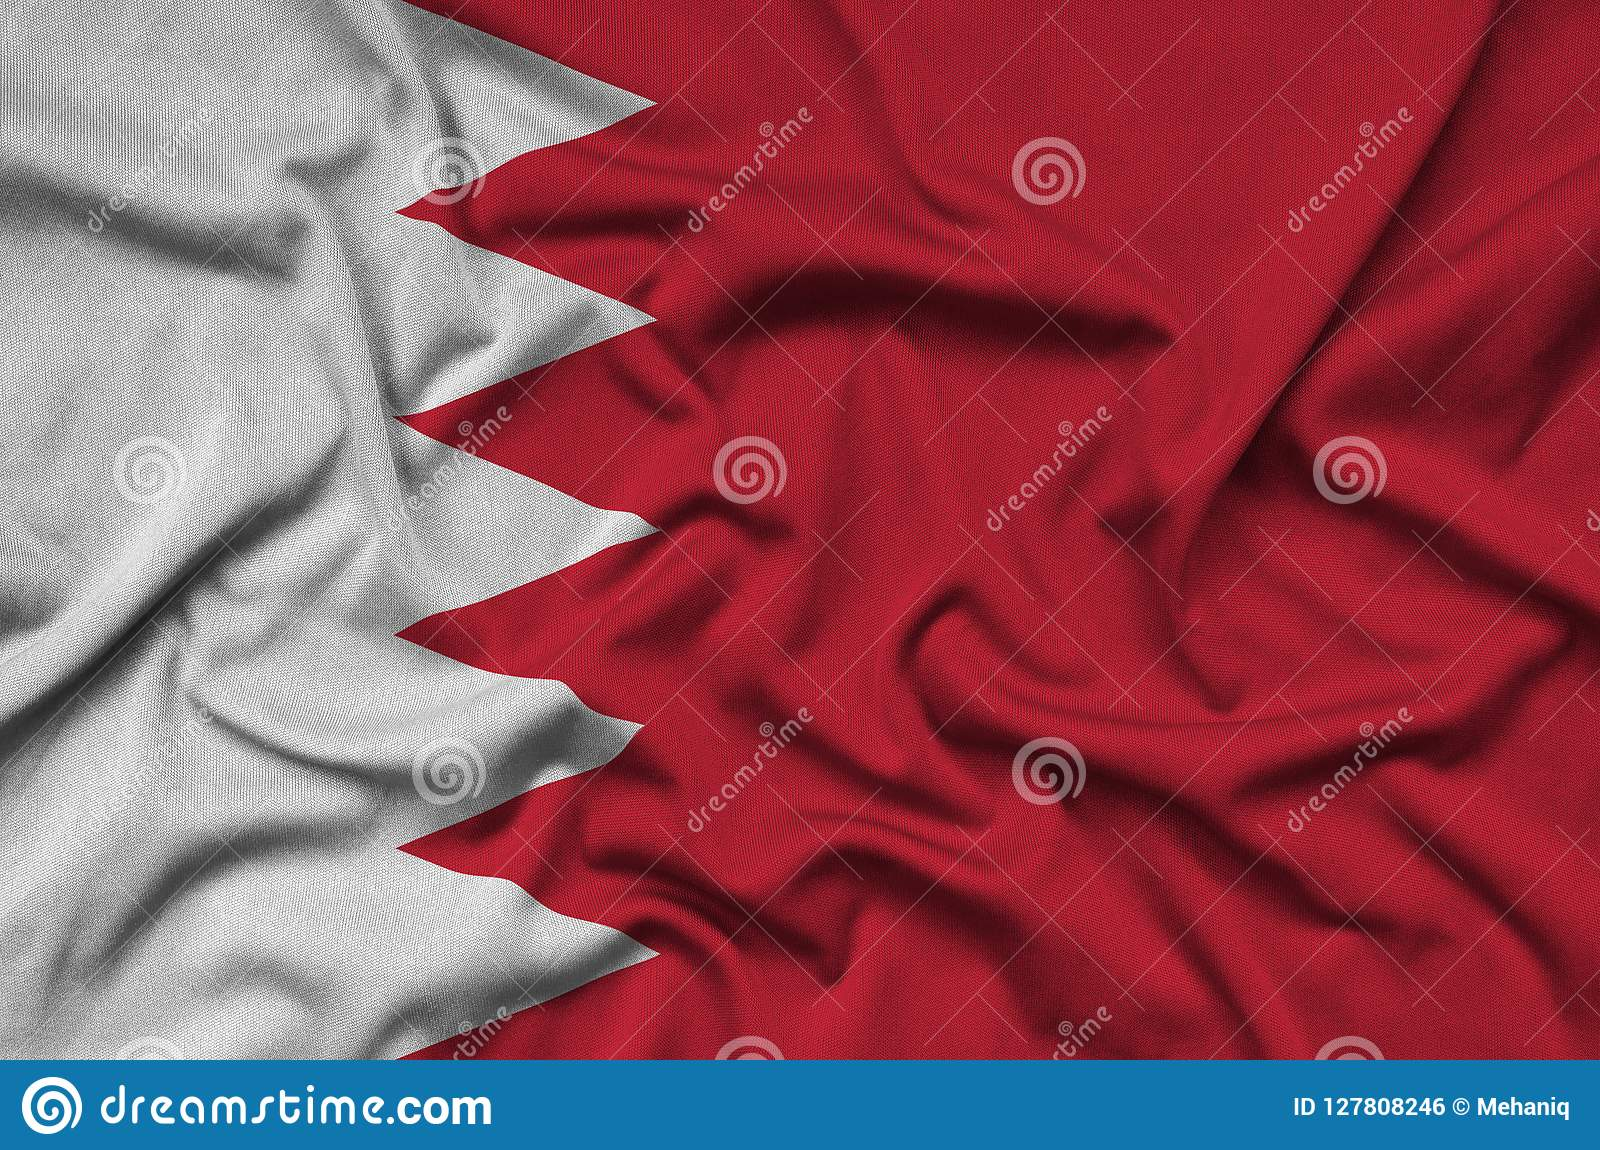 Bahrain Flag Is Depicted On A Sports Cloth Fabric With Many